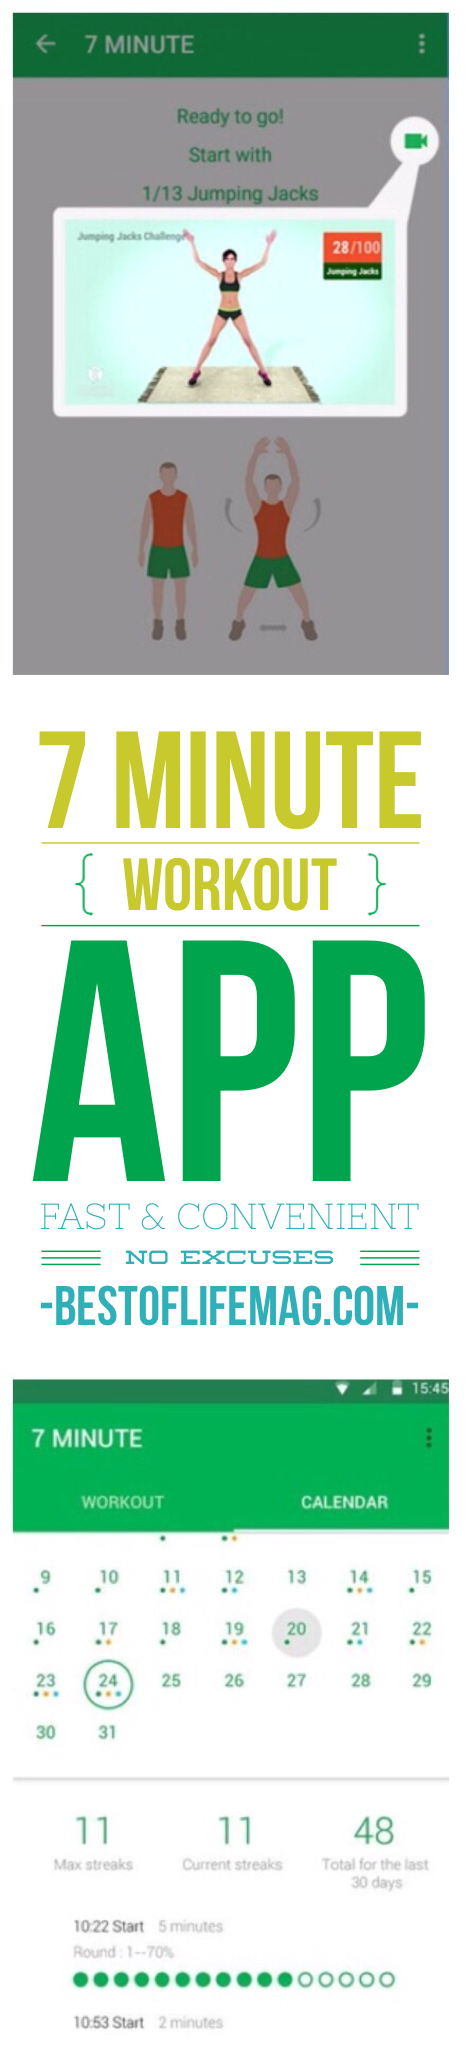 7 Minute Workout App to Lose Weight